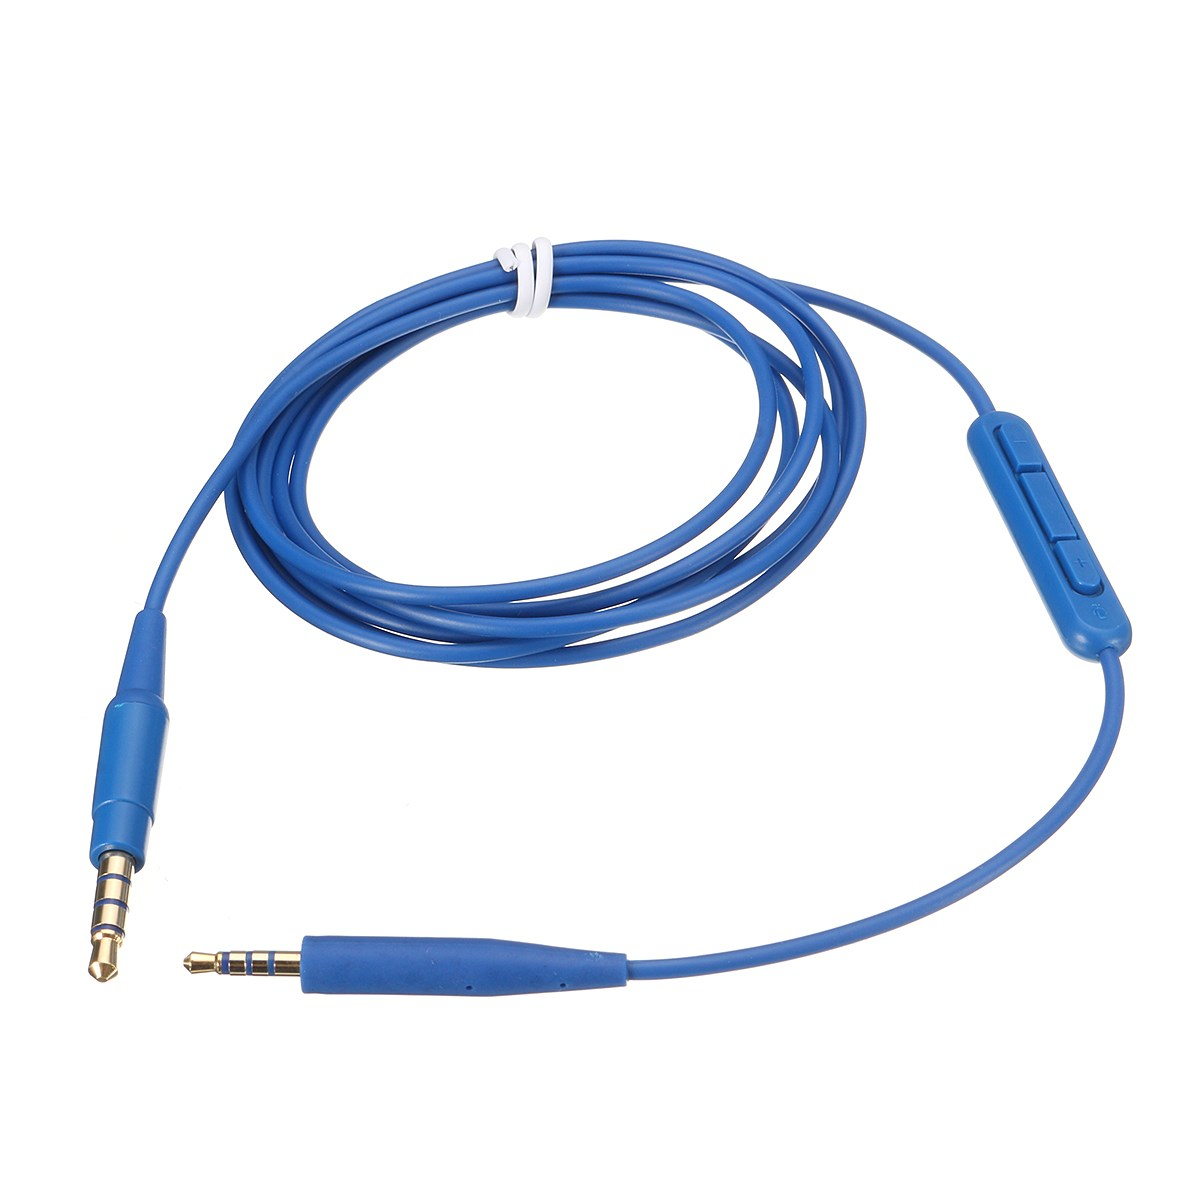 new replacement cable for bose headphones remote audio cable with mic for soundtrue for soundlink on [ 1200 x 1200 Pixel ]